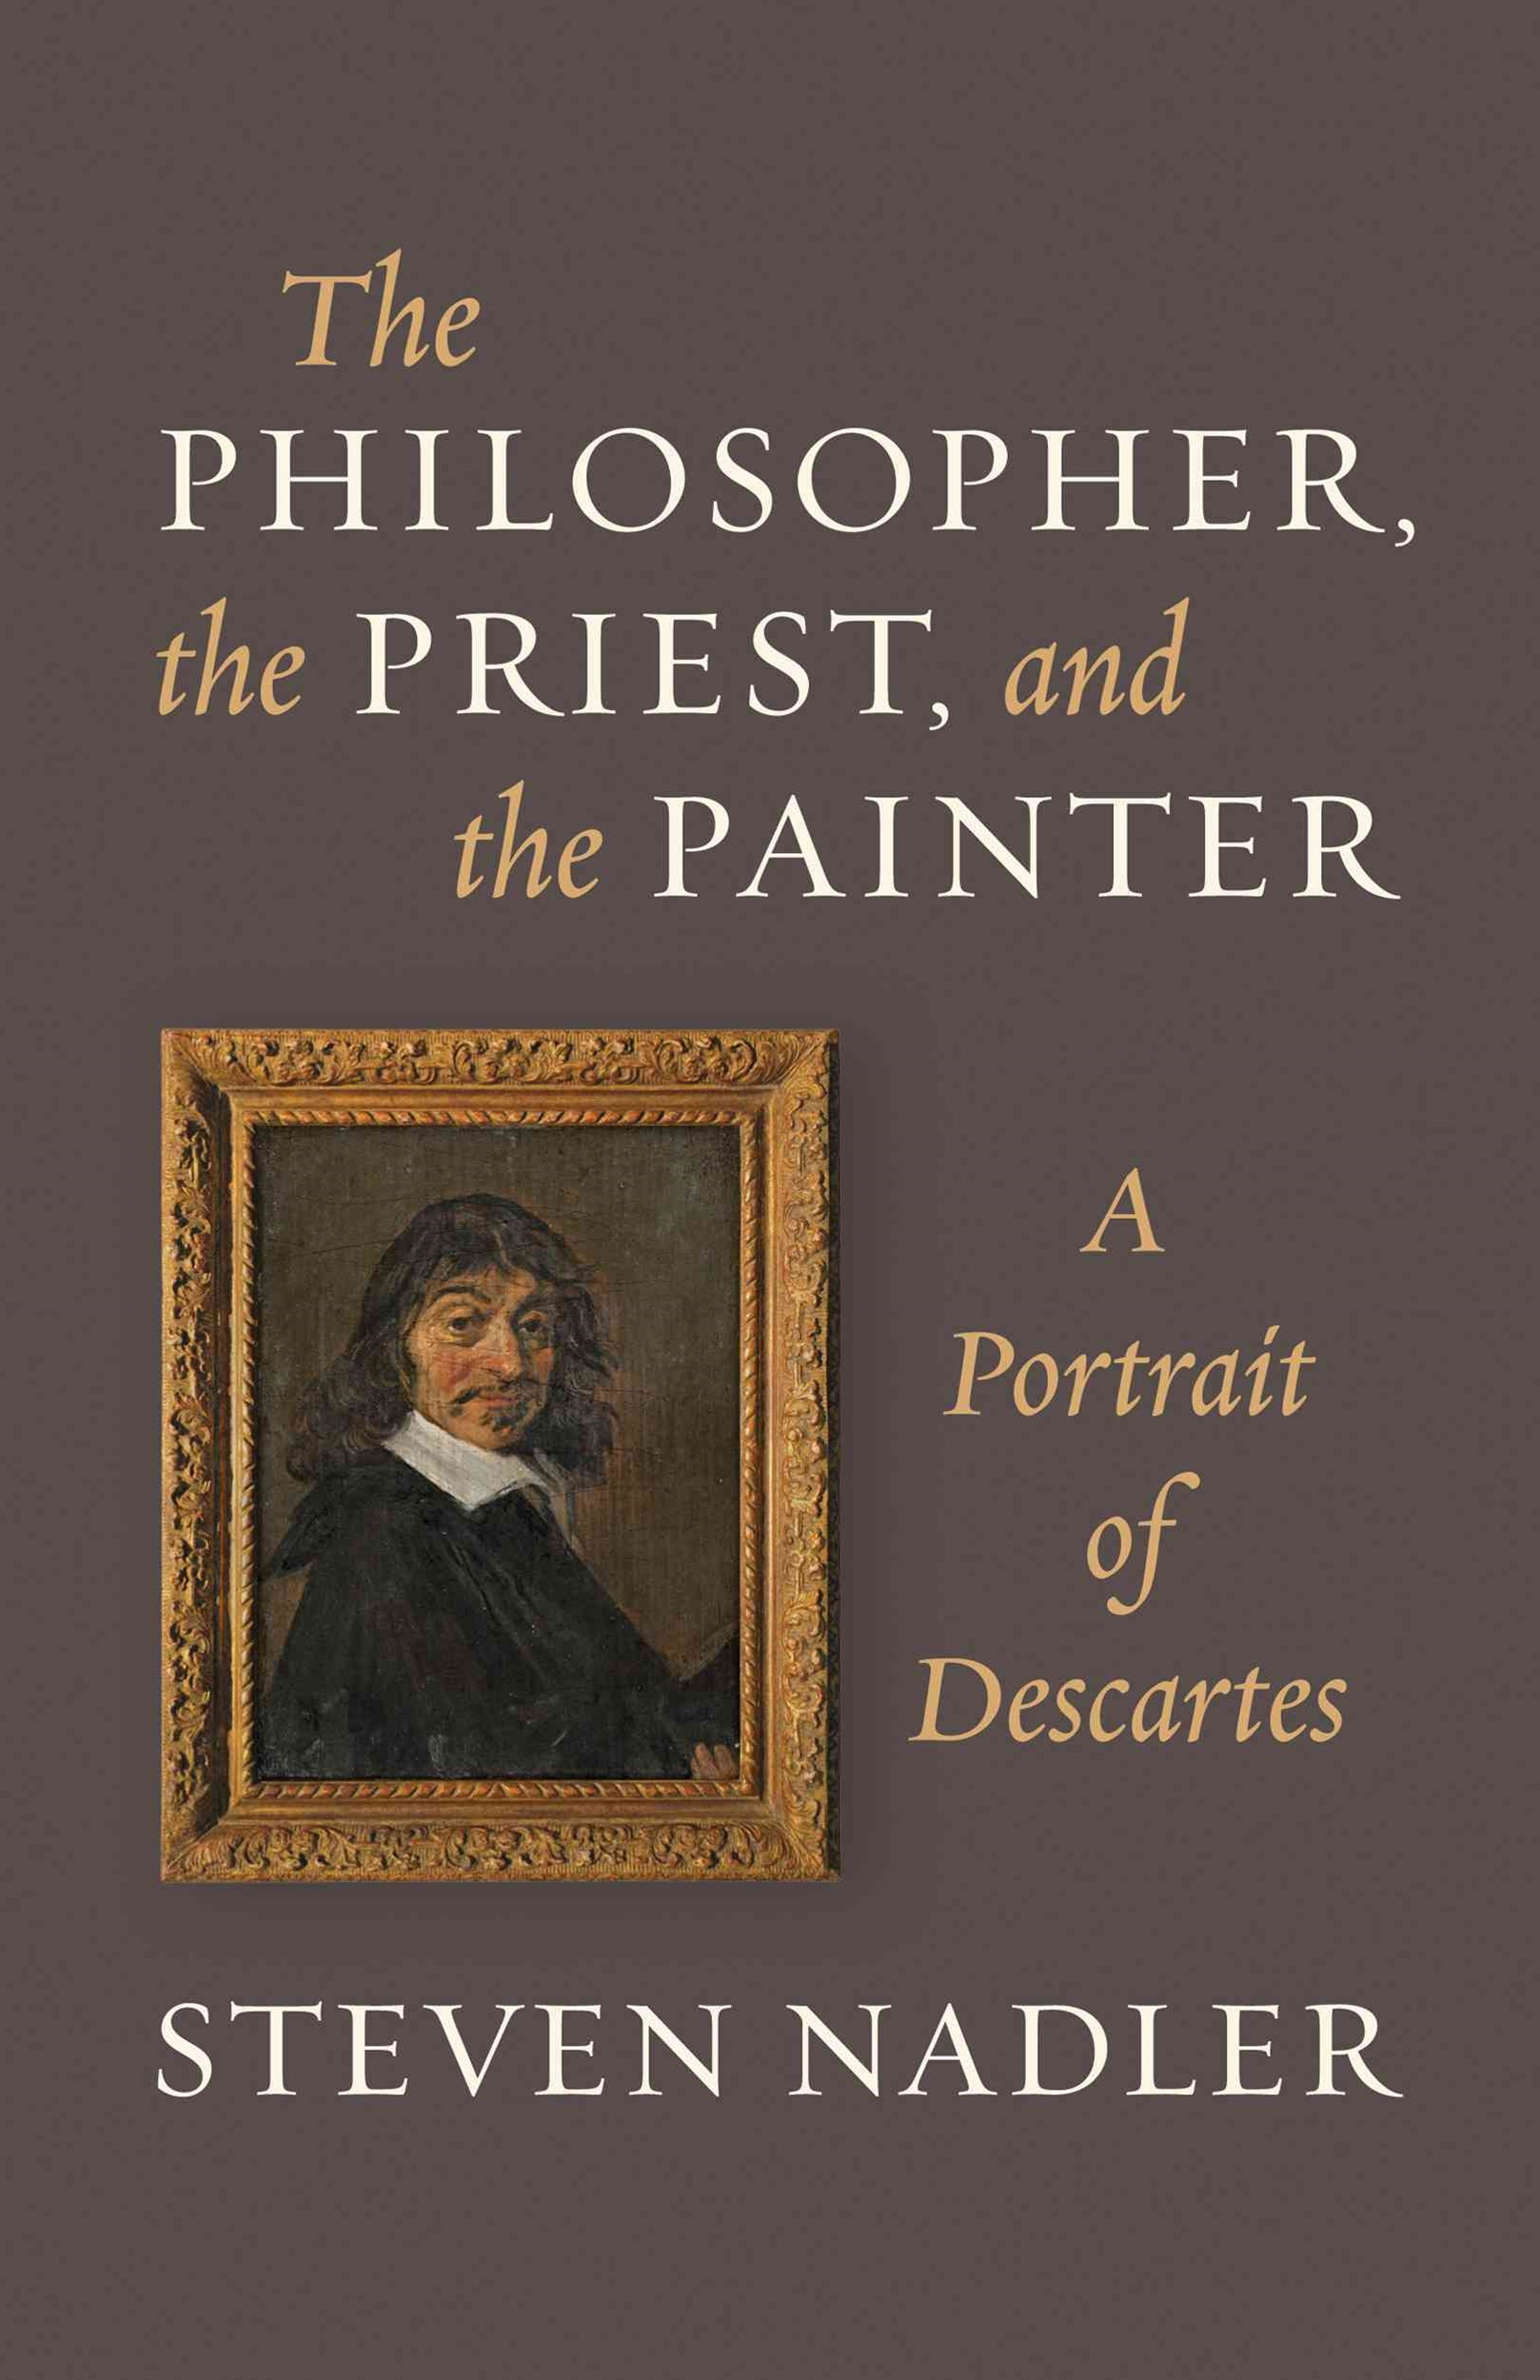 Philosopher, the Priest, and the Painter